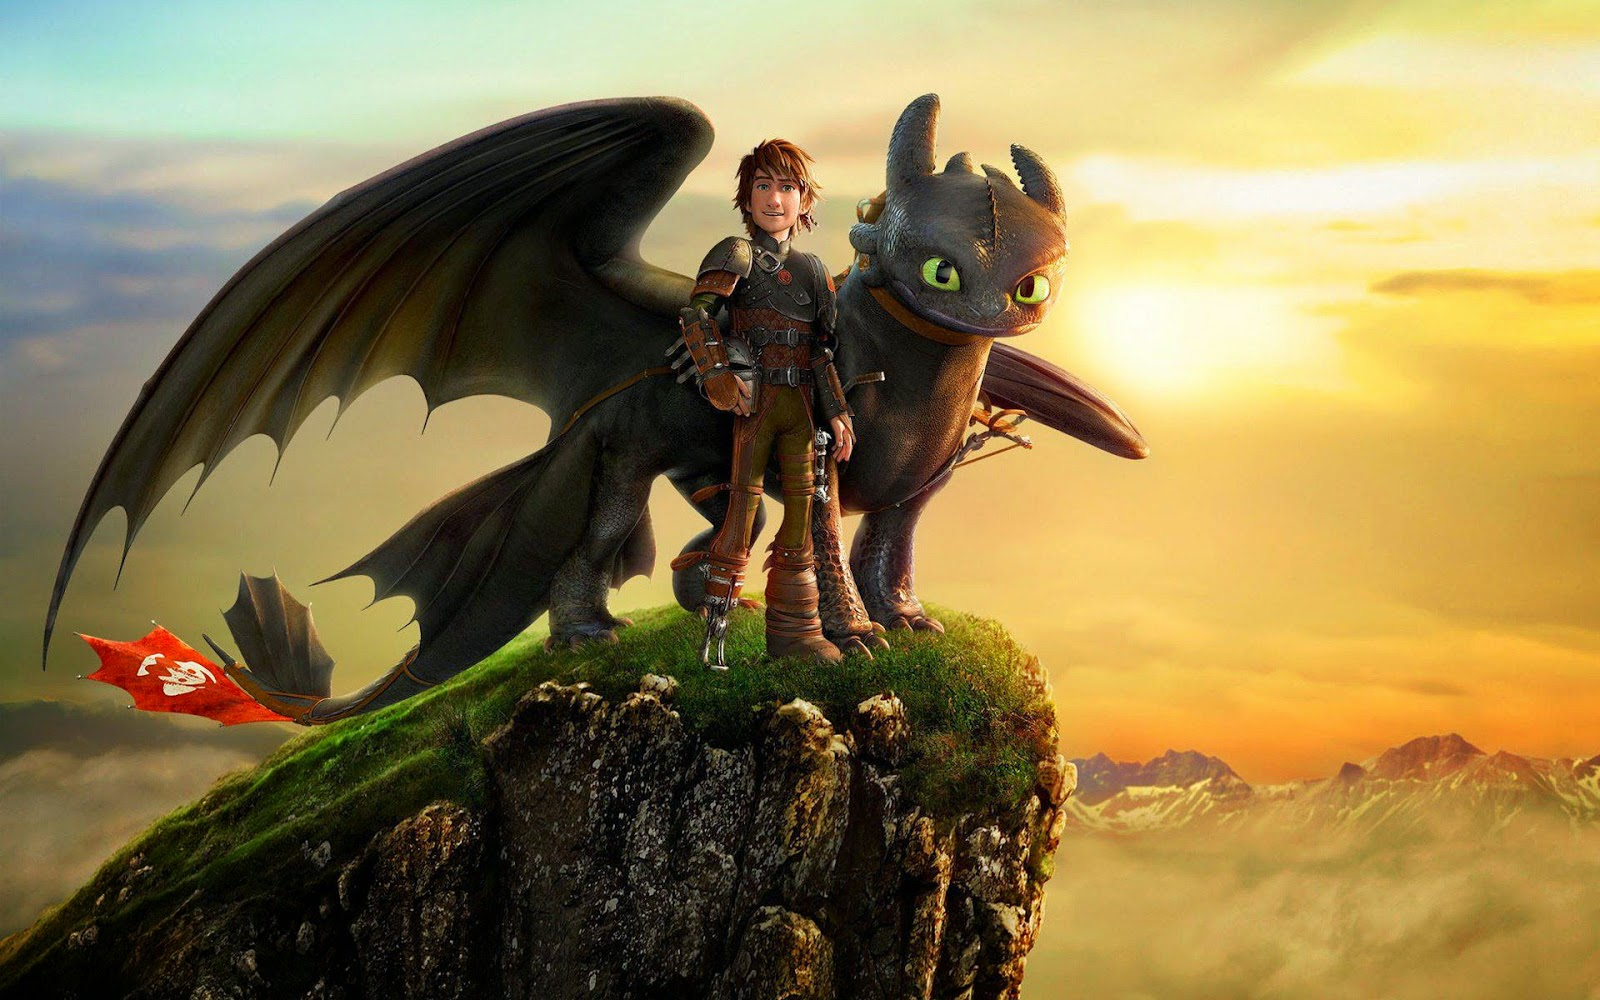 How to train your dragon 2 full movie in hindi khatrimaza vk dragon ball z wikipedia 2017 free download how to train your ccuart Image collections